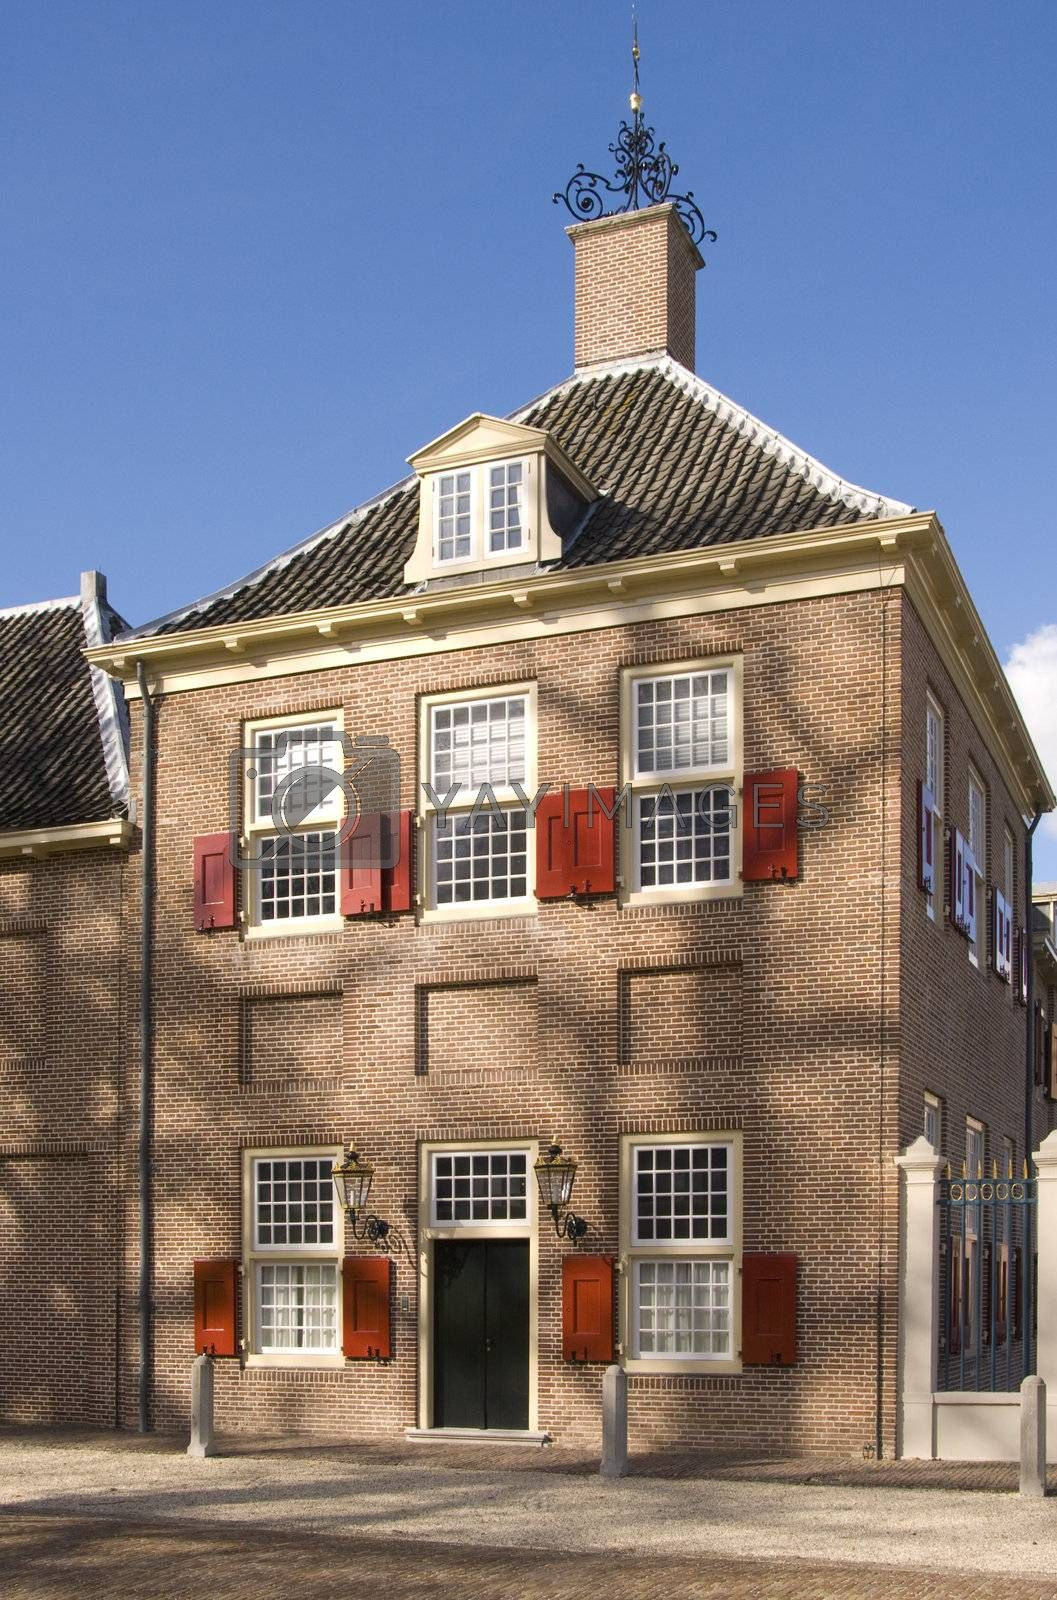 Building at Paleis Het Loo (Royal Palace in Apeldoorn, The Nethe by huijzer